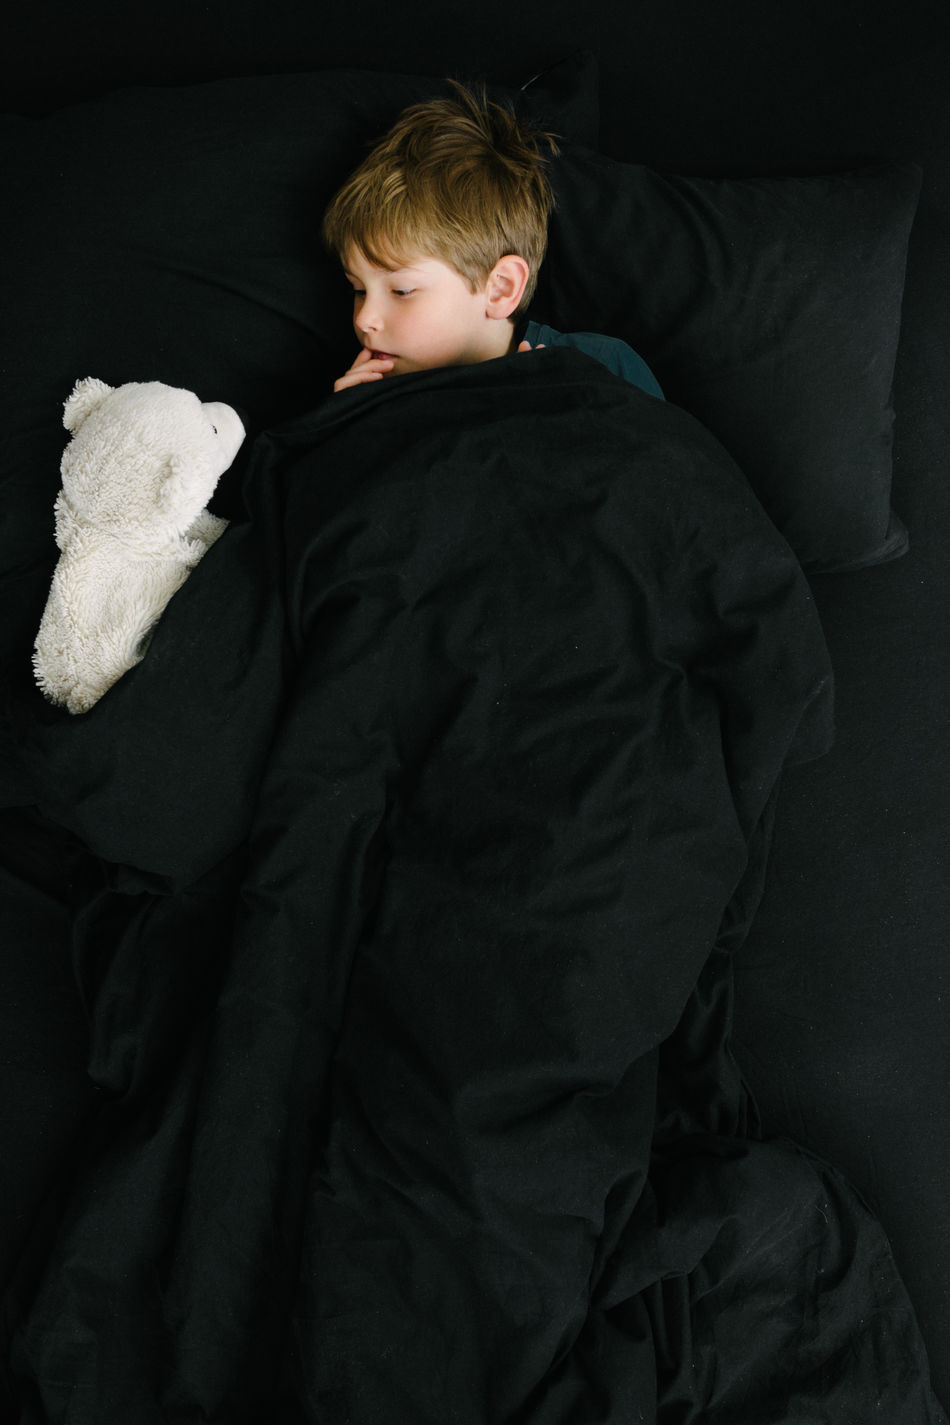 Boy talking to polar bear in black bed covers Bear Bed Bedroom Black Background Black Color Blond Boy Child Childhood Children Children Only Conversation Friends Imagination Indoors  Kids One Person People Pillow Polar Bear Stuffed Animal Welcome To Black White